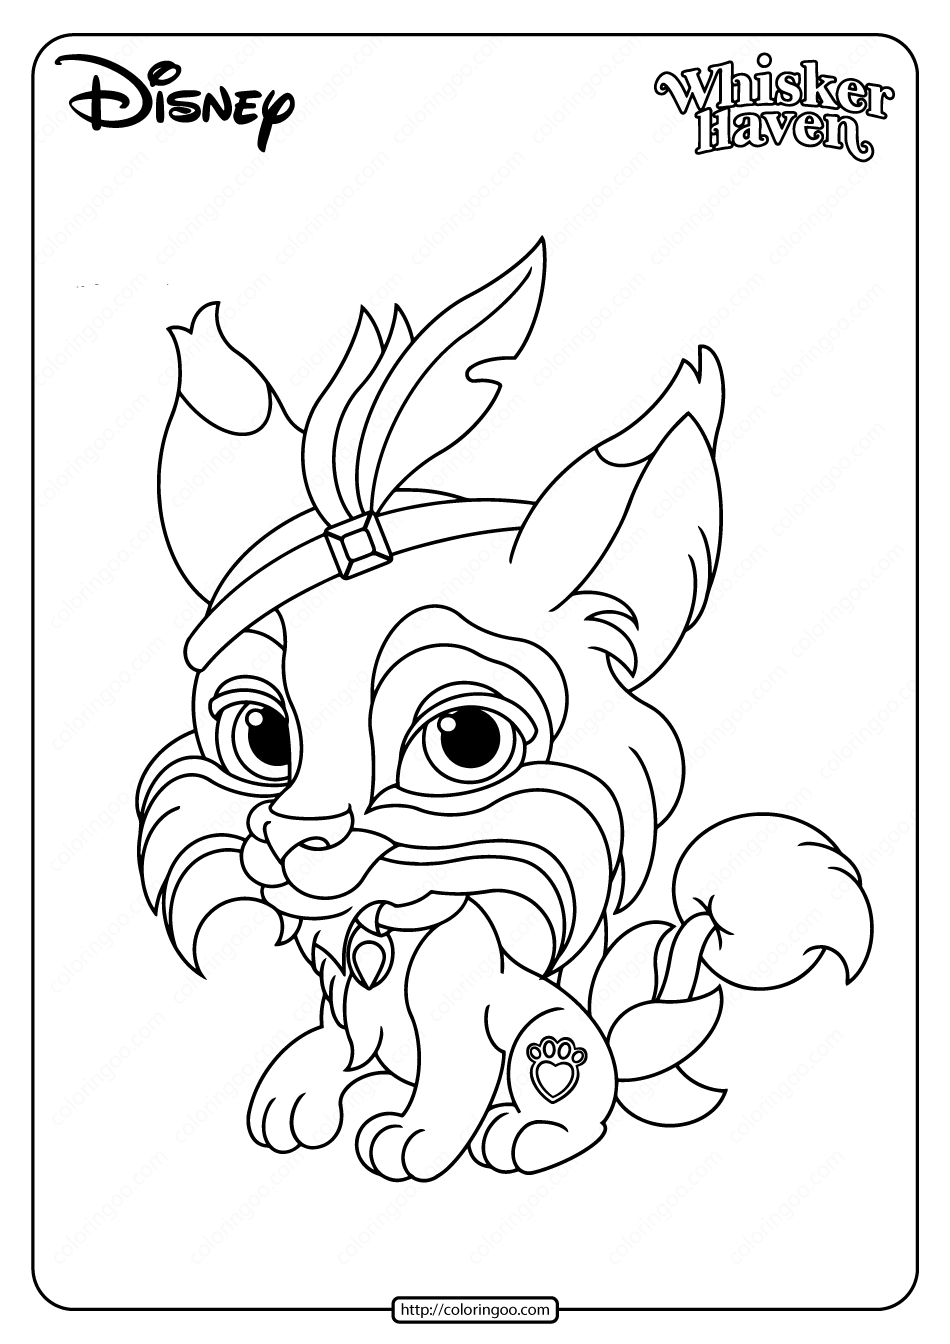 Free Printable Pocahontas Coloring Pages For Kids | 1344x950